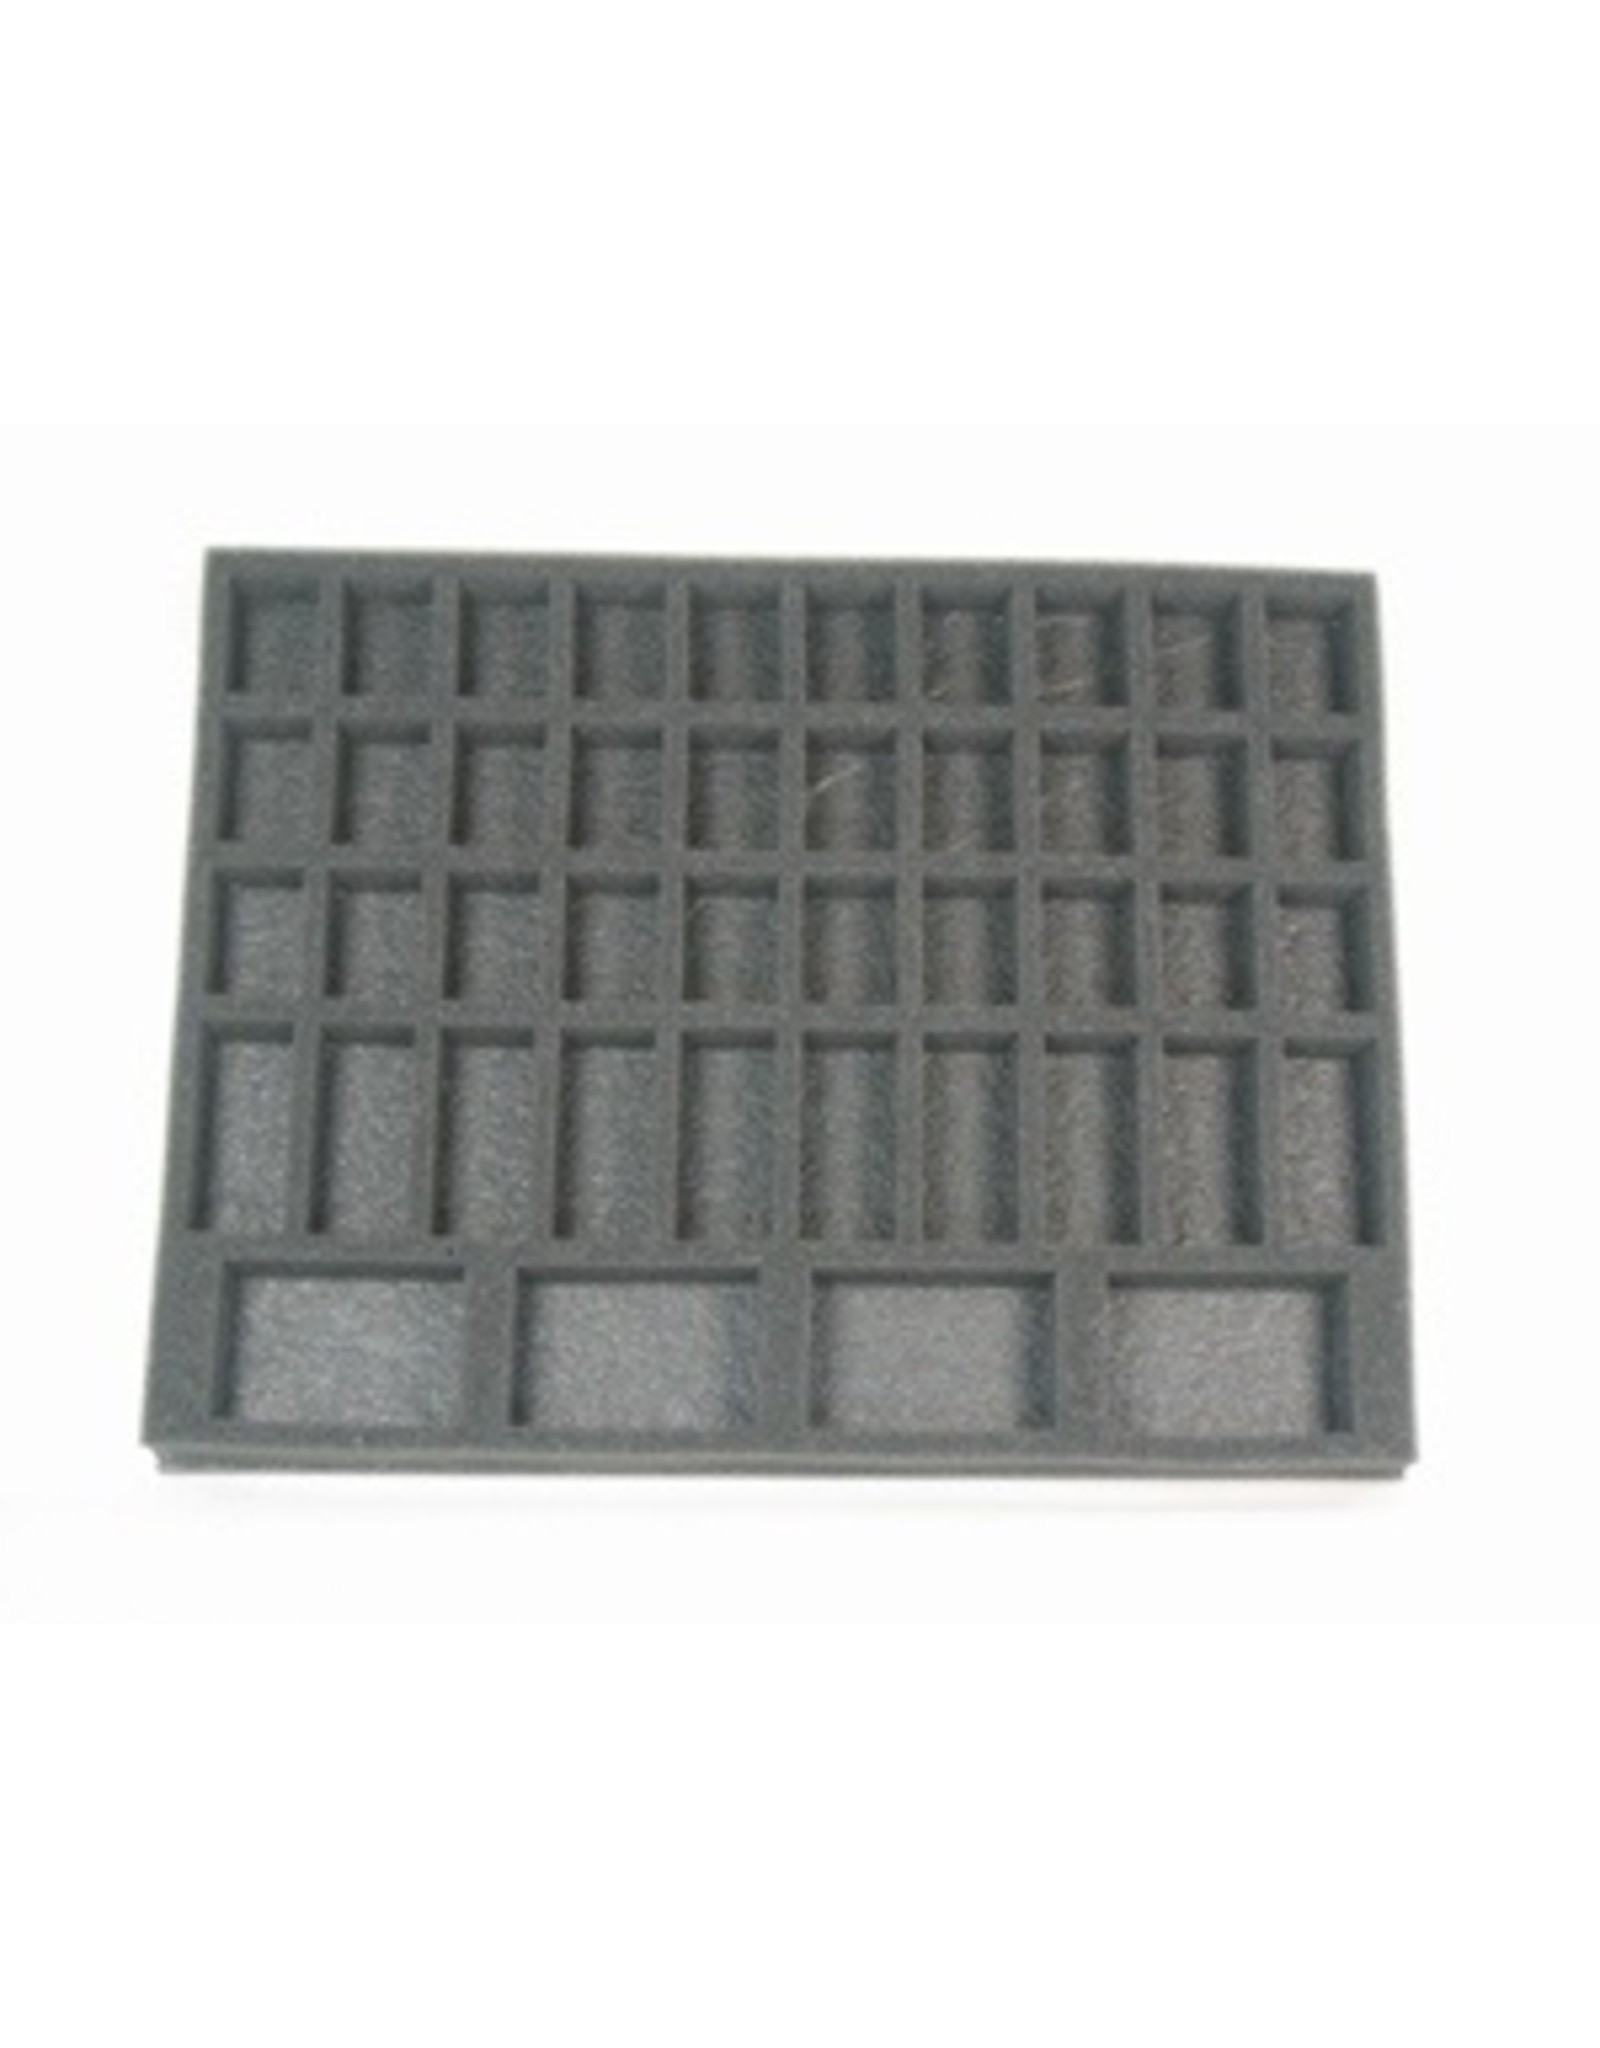 Battlefoam Small, Medium, and Large Troop Foam Tray (BFL-1.5)